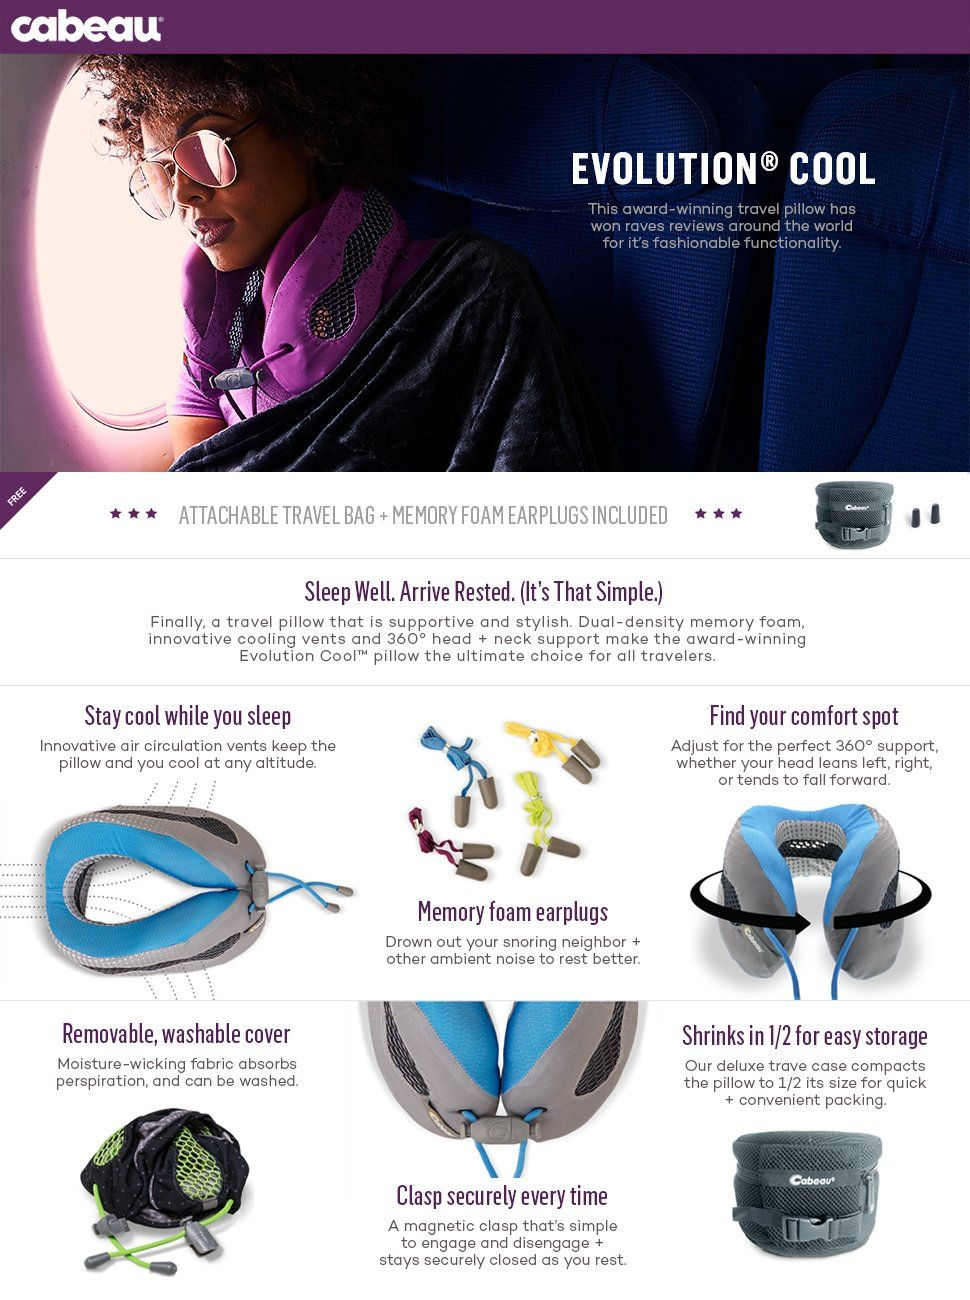 amazoncom cabeau evolution cool travel pillow the best neck pillow with 360 - Cabeau Evolution Pillow